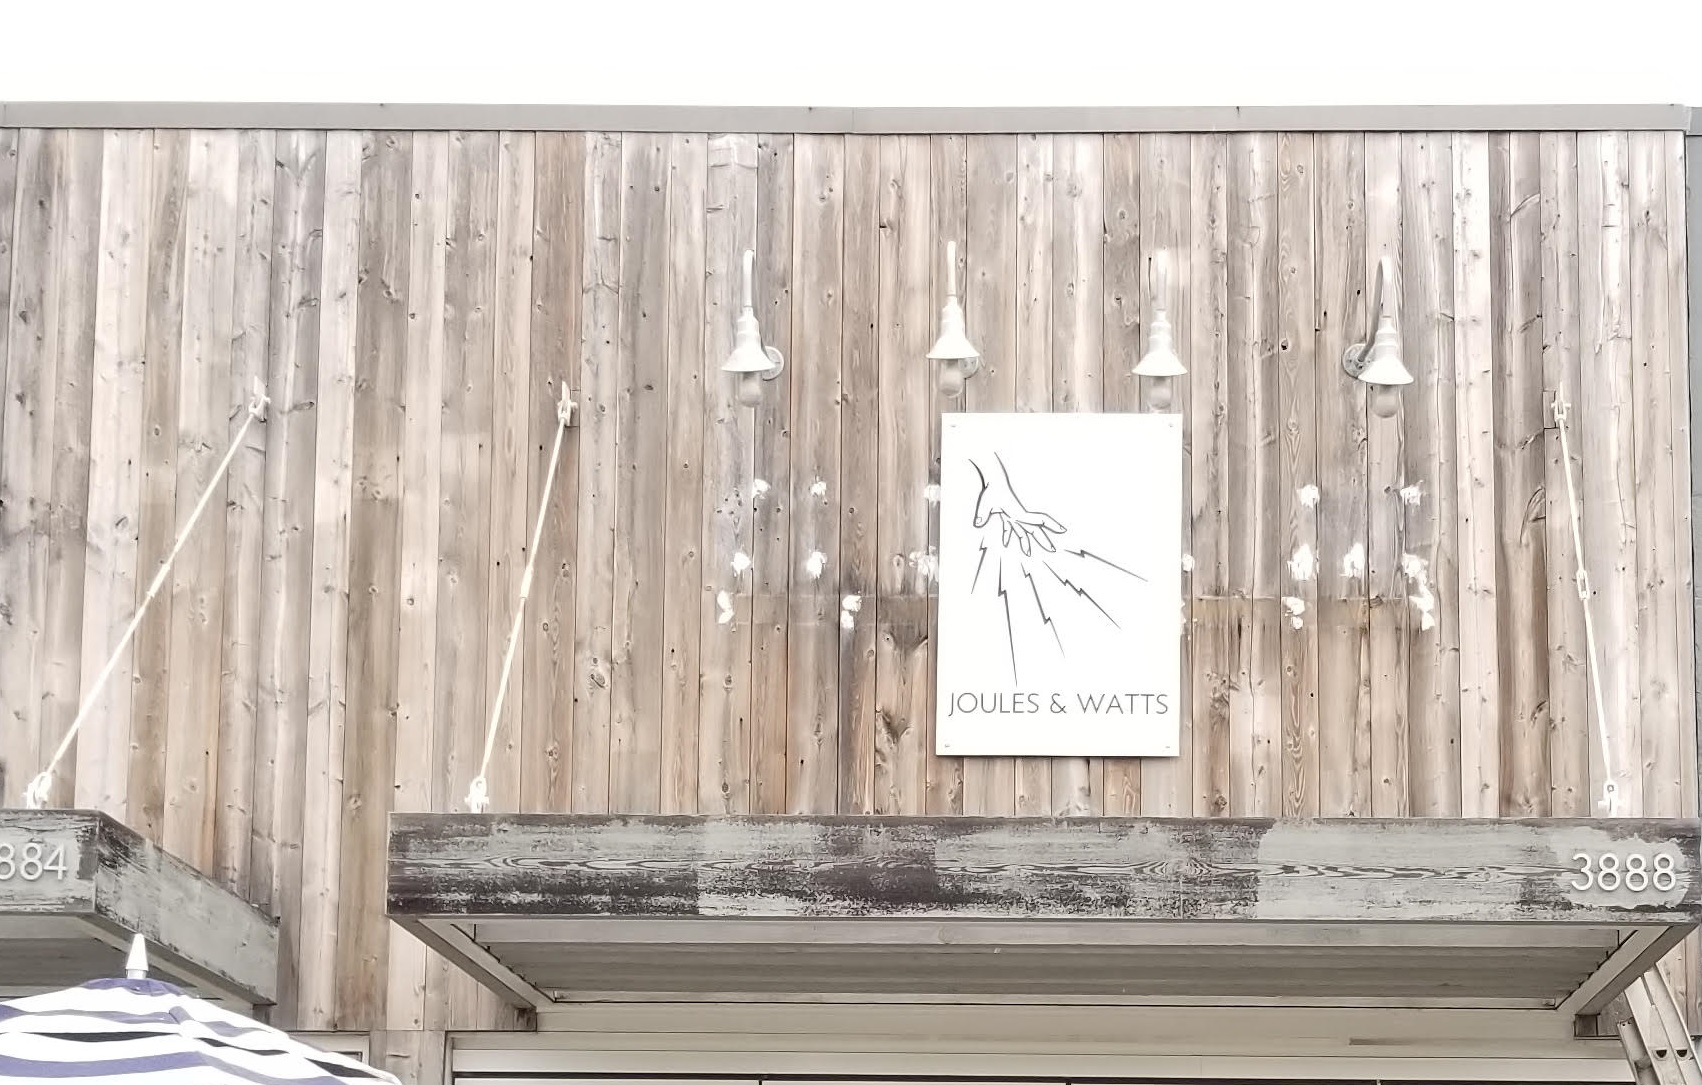 We fabricated and installed this custom business sign for Joules and Watt cafe in Malibu. Brands need to look distinct, and so do their signage!